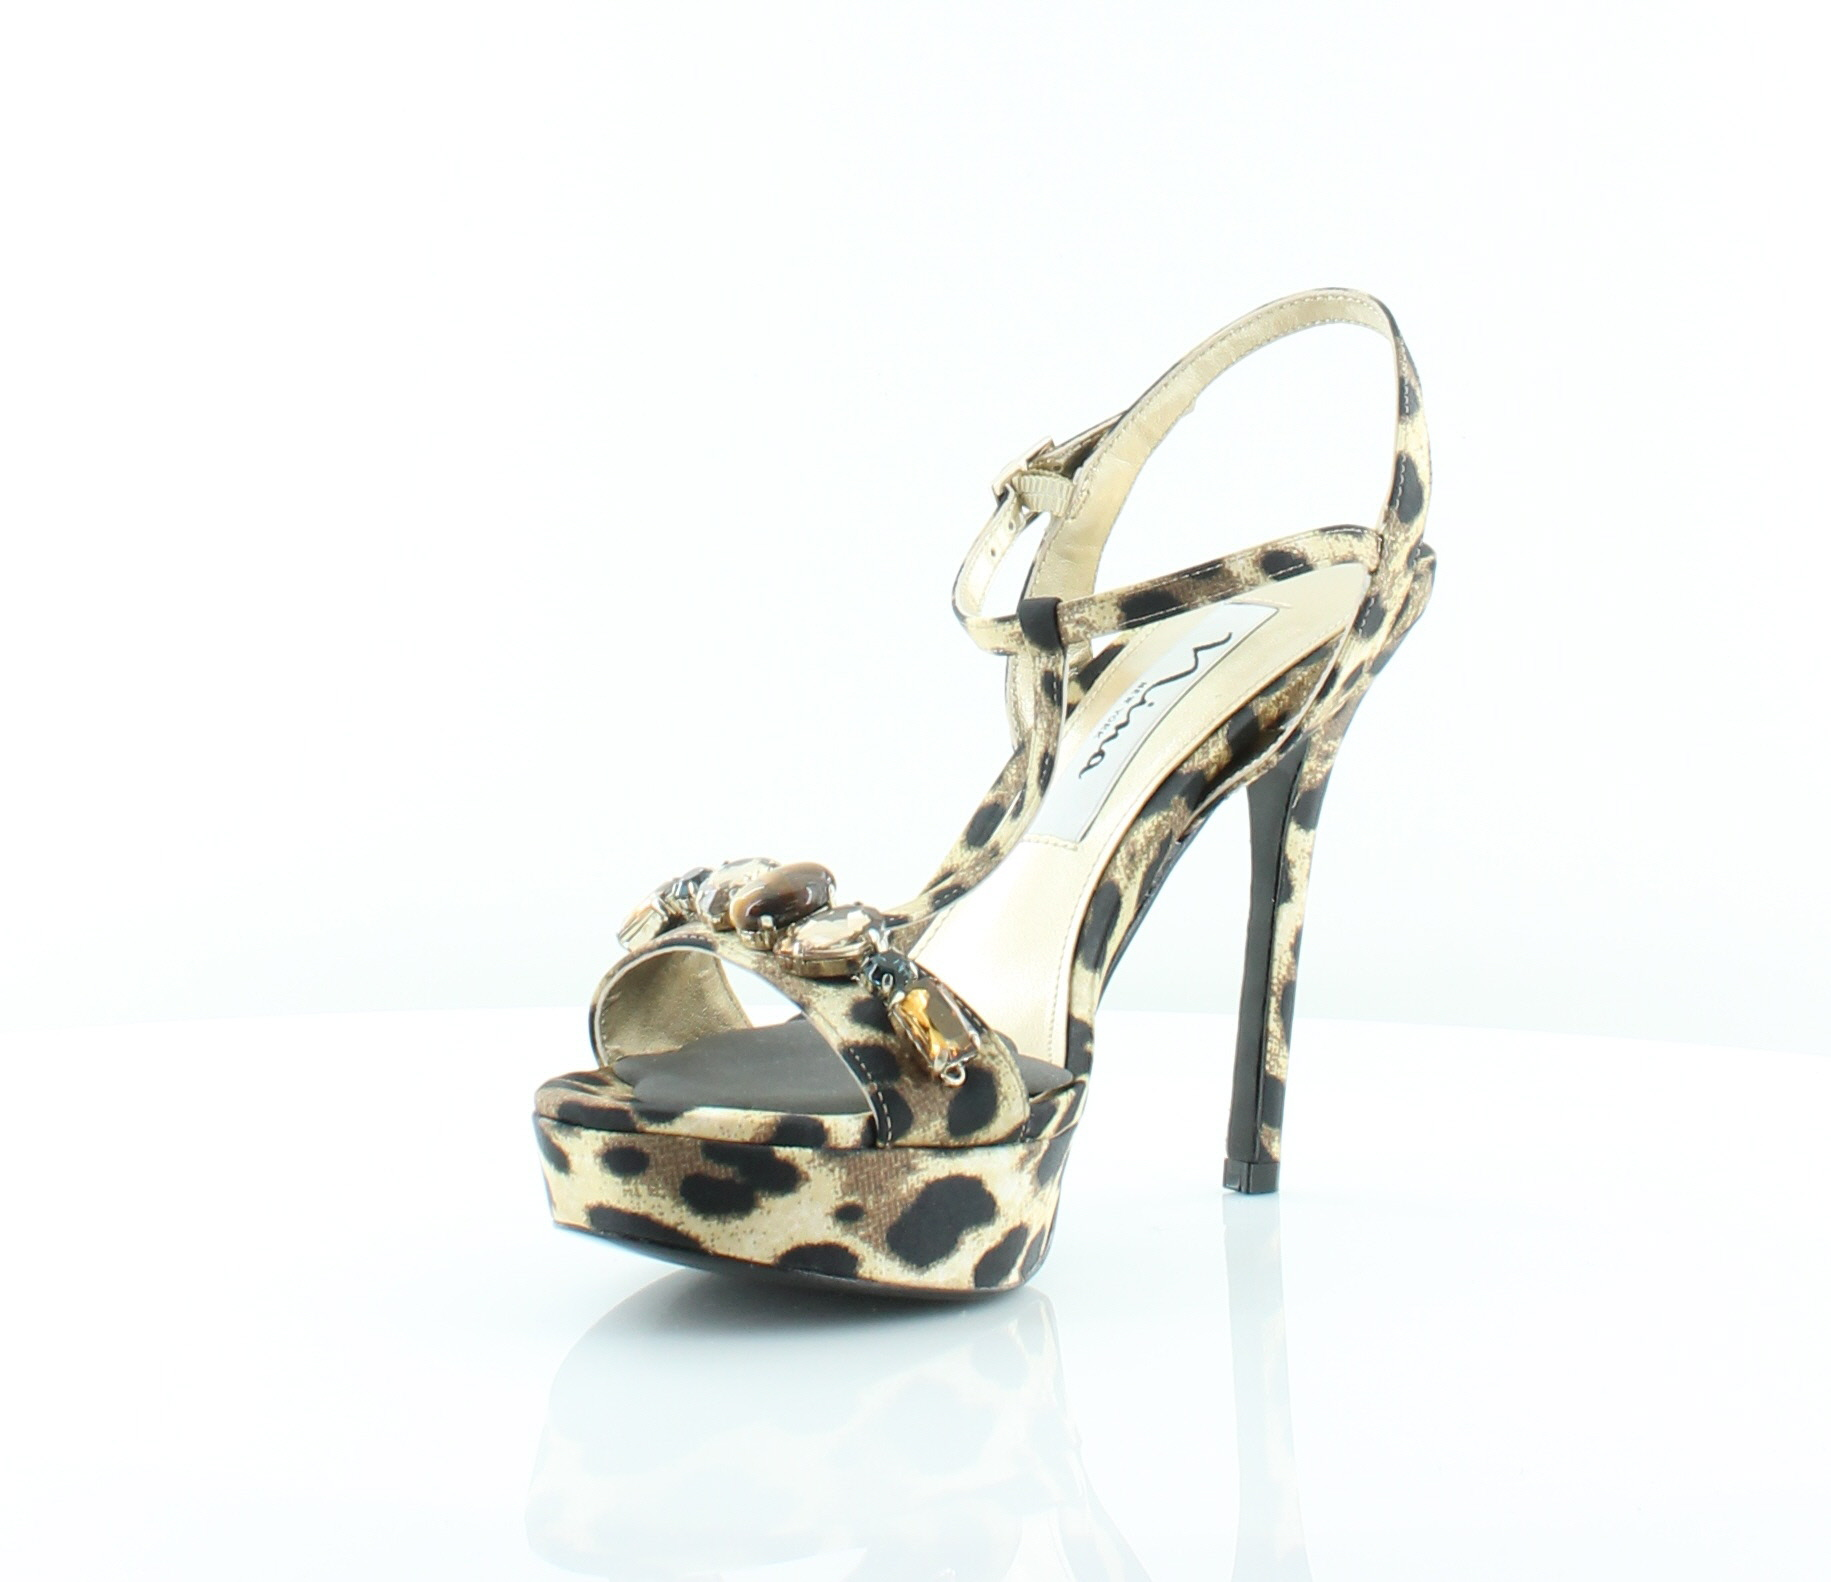 ... Picture 2 of 5; Picture 3 of 5; Picture 4 of 5. 2. Nina Jada Women's  Heels Natural Leopard ...